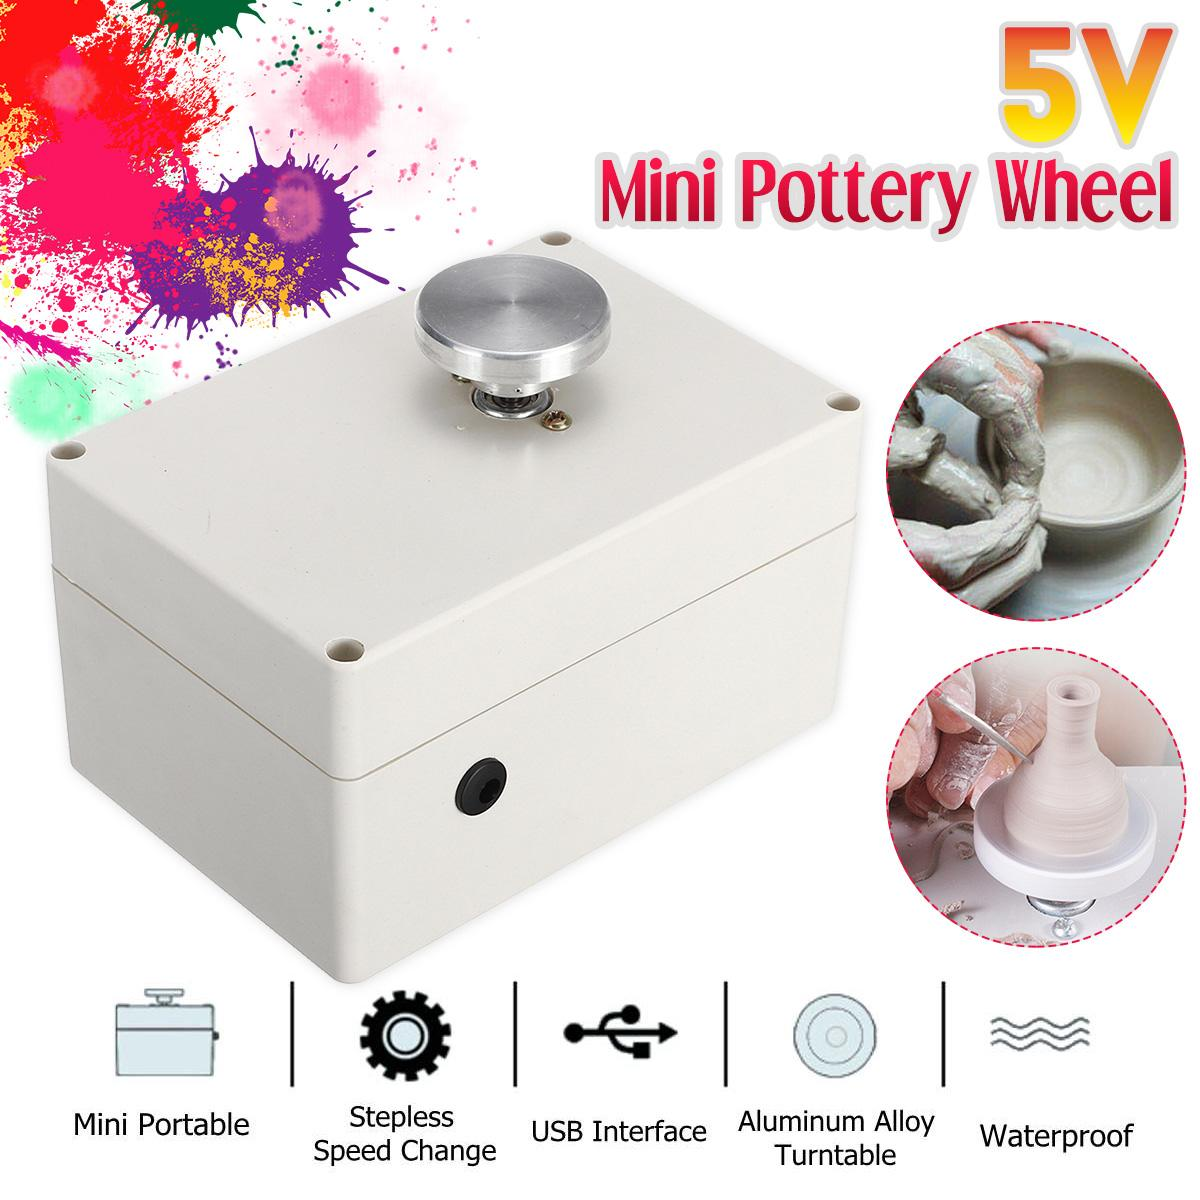 Pottery Wheel Electric 5V Mini USB Ceramic Machine For Clay Art Work Crafts DIY Manual Control Speed Stepless Carried Smooth